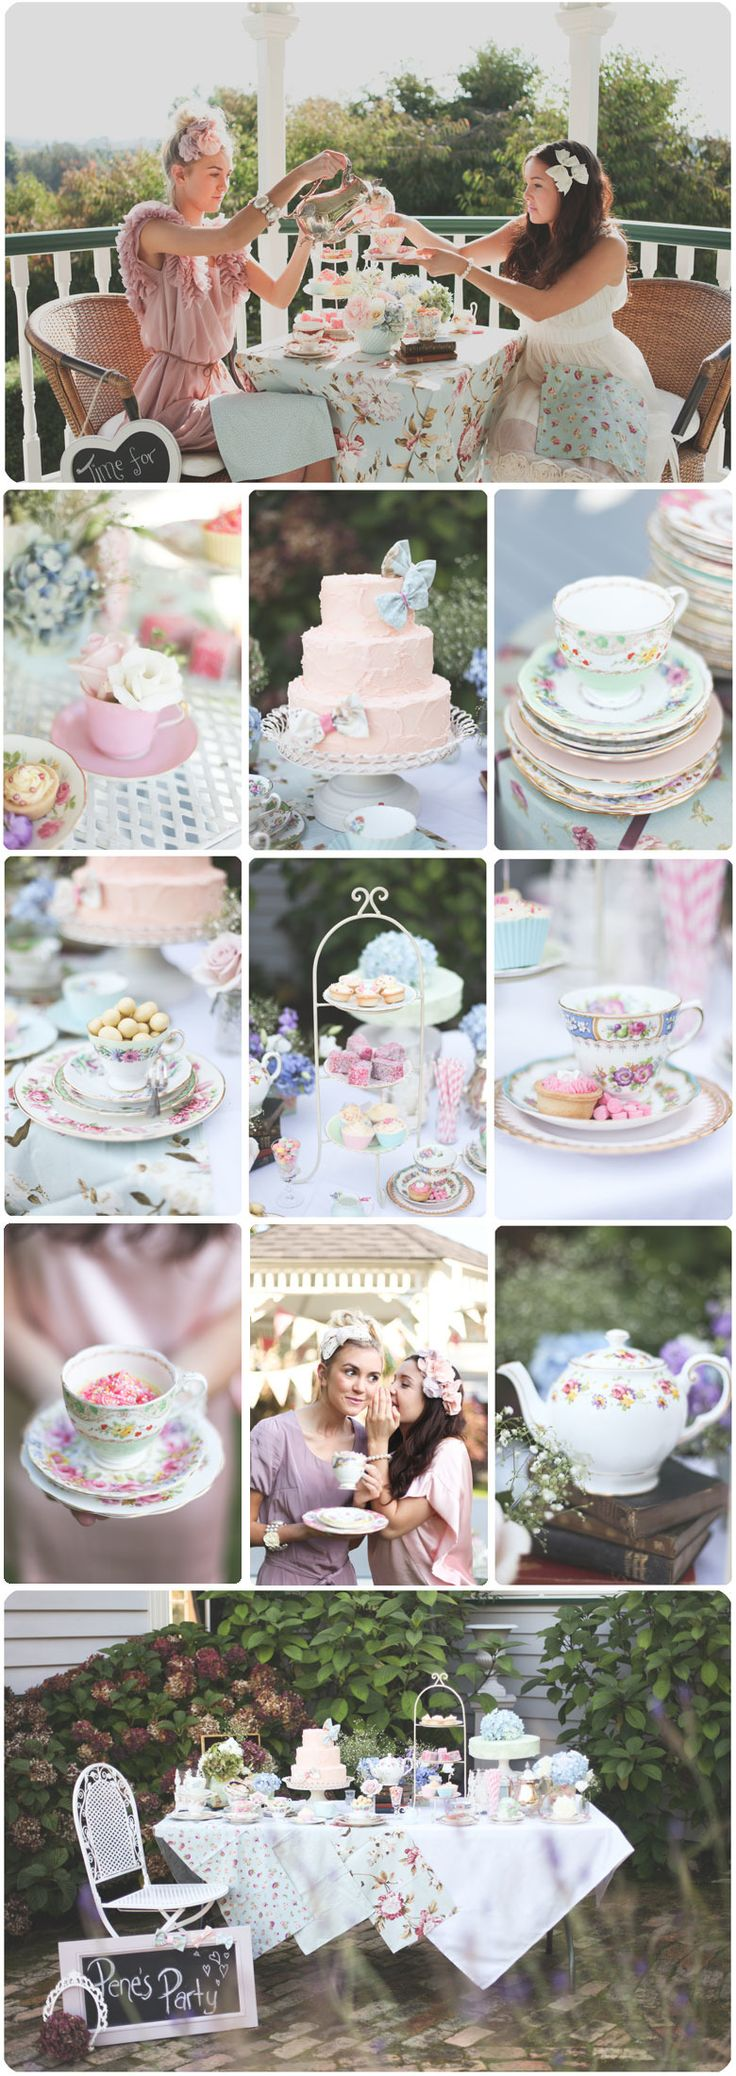 How beautifully styled is this? You will feel so honored and impossibly chic to attend a gorgeous afternoon tea like this  #hyleys #teatime #partyideas